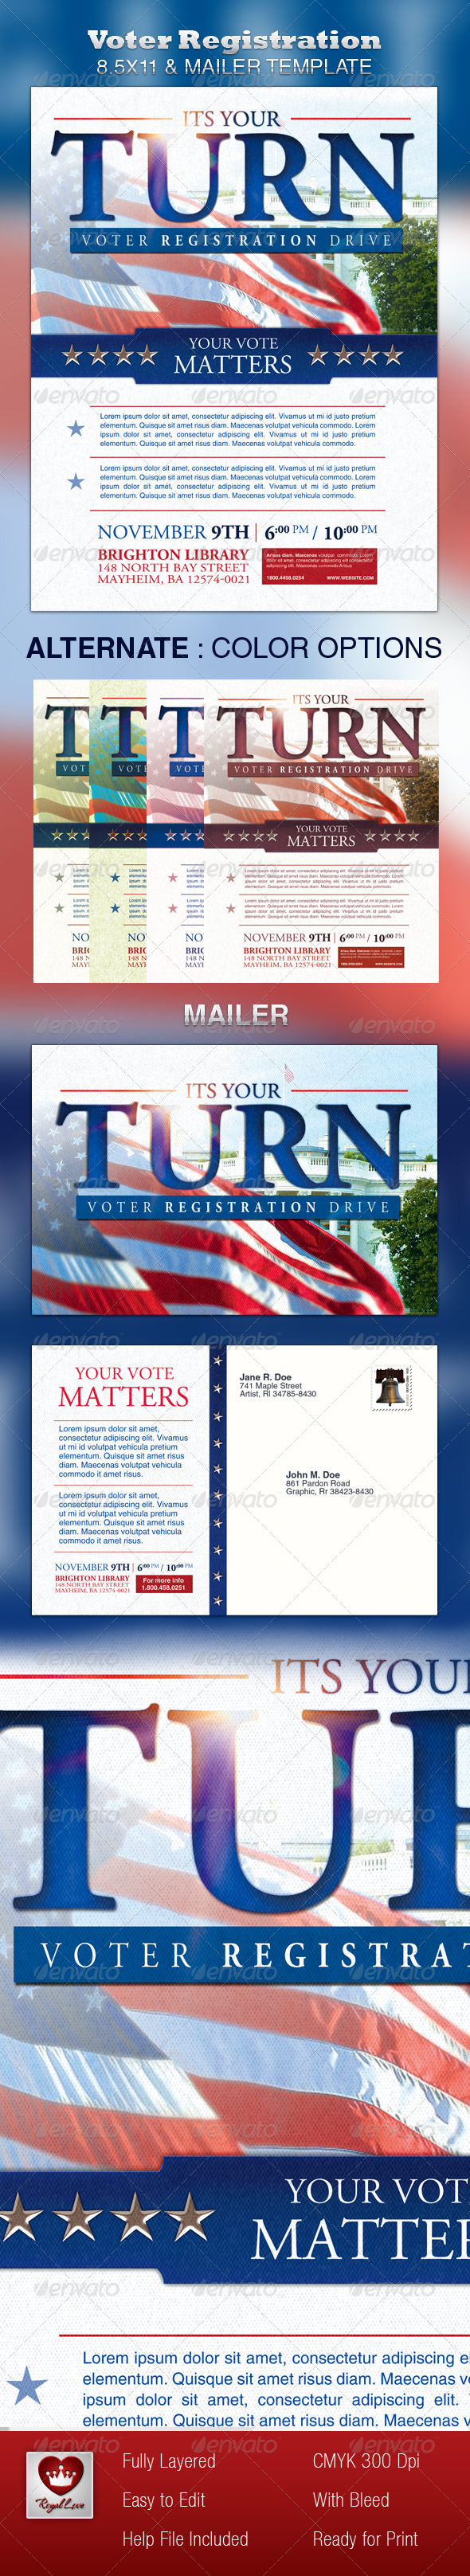 Voter Registration 8.5x11 & Mailer - Events Flyers